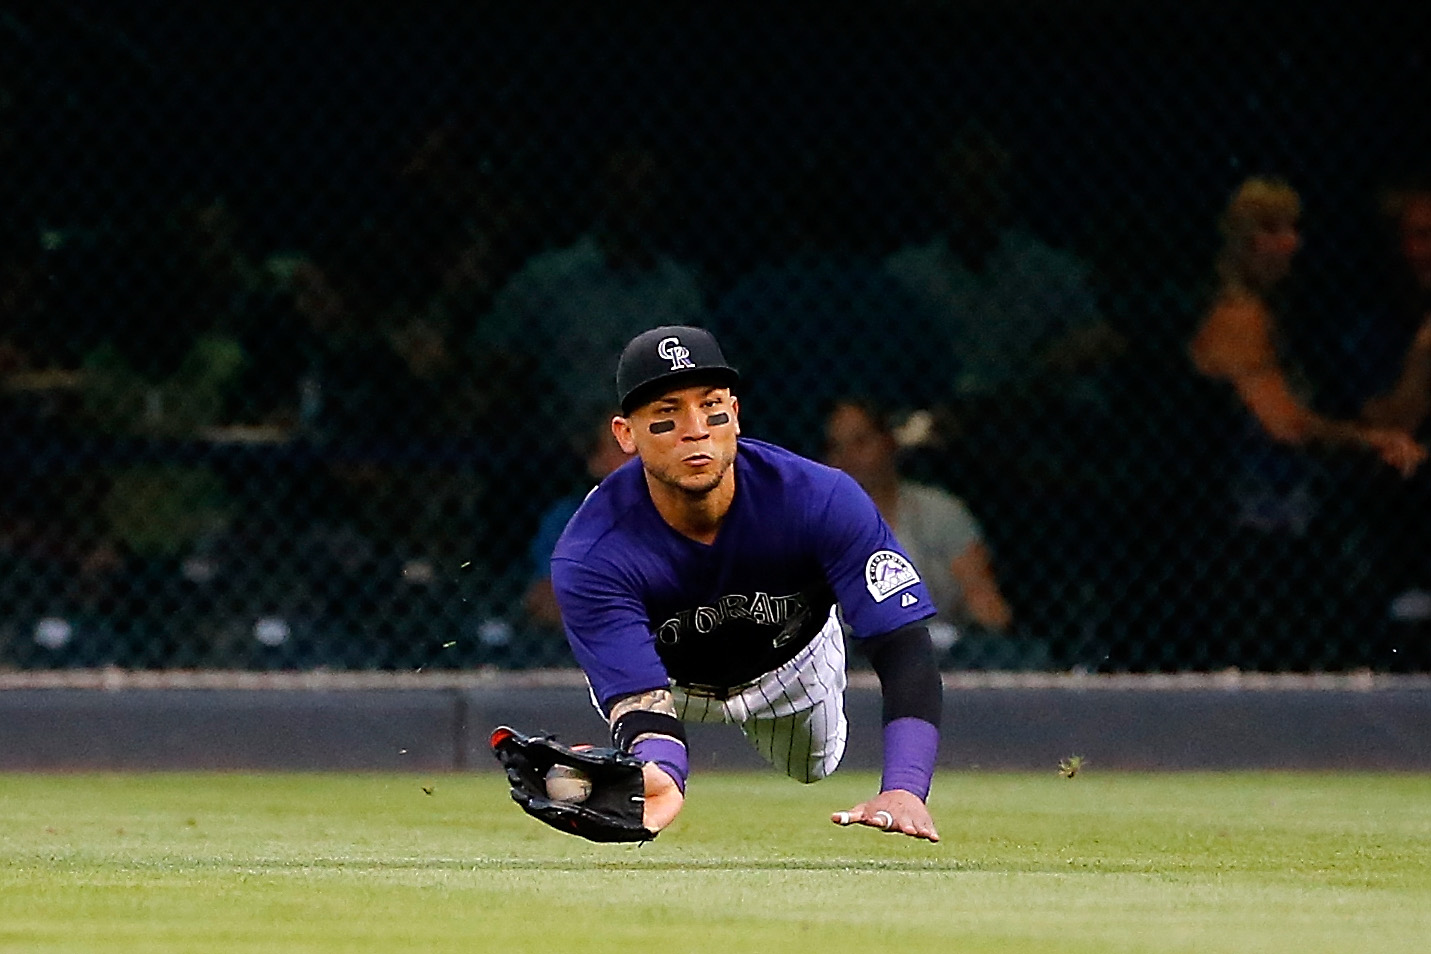 DENVER, CO - SEPTEMBER 02:  Rightfielder Carlos Gonzalez #5 of the Colorado Rockies makes a diving catch on a sacrifice fly by A.J. Pollock #11 of the Arizona Diamondbacks to score Ender Inciarte #5 of the Arizona Diamondbacks to take a 1-0 lead in the first inning at Coors Field on September 2, 2015 in Denver, Colorado.  (Photo by Doug Pensinger/Getty Images)